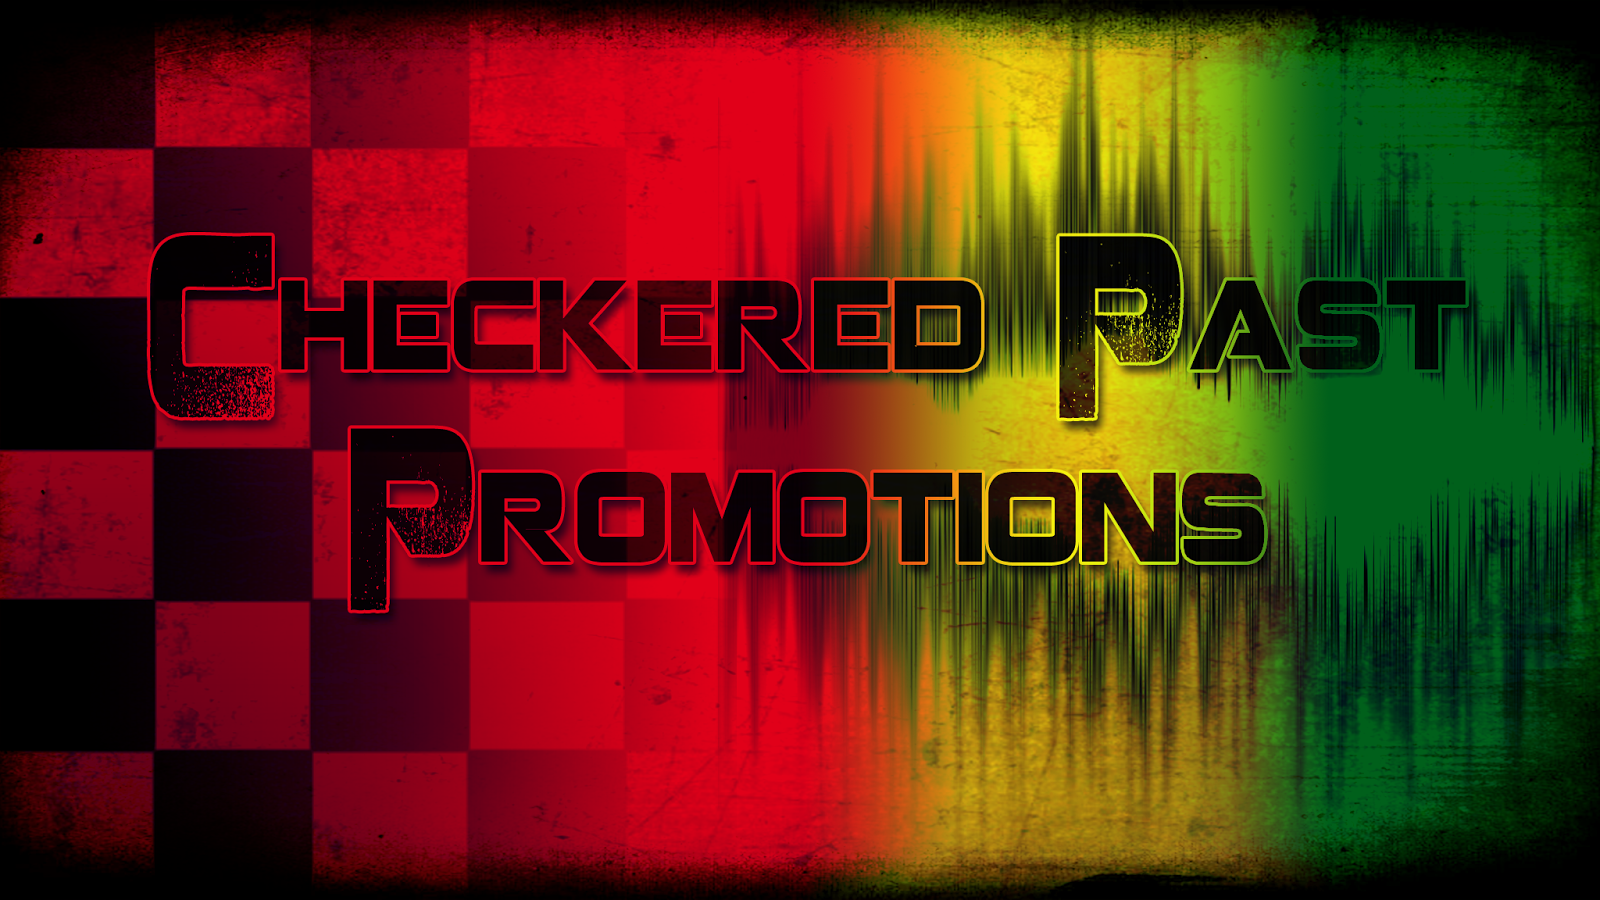 Checkered Past Promotions